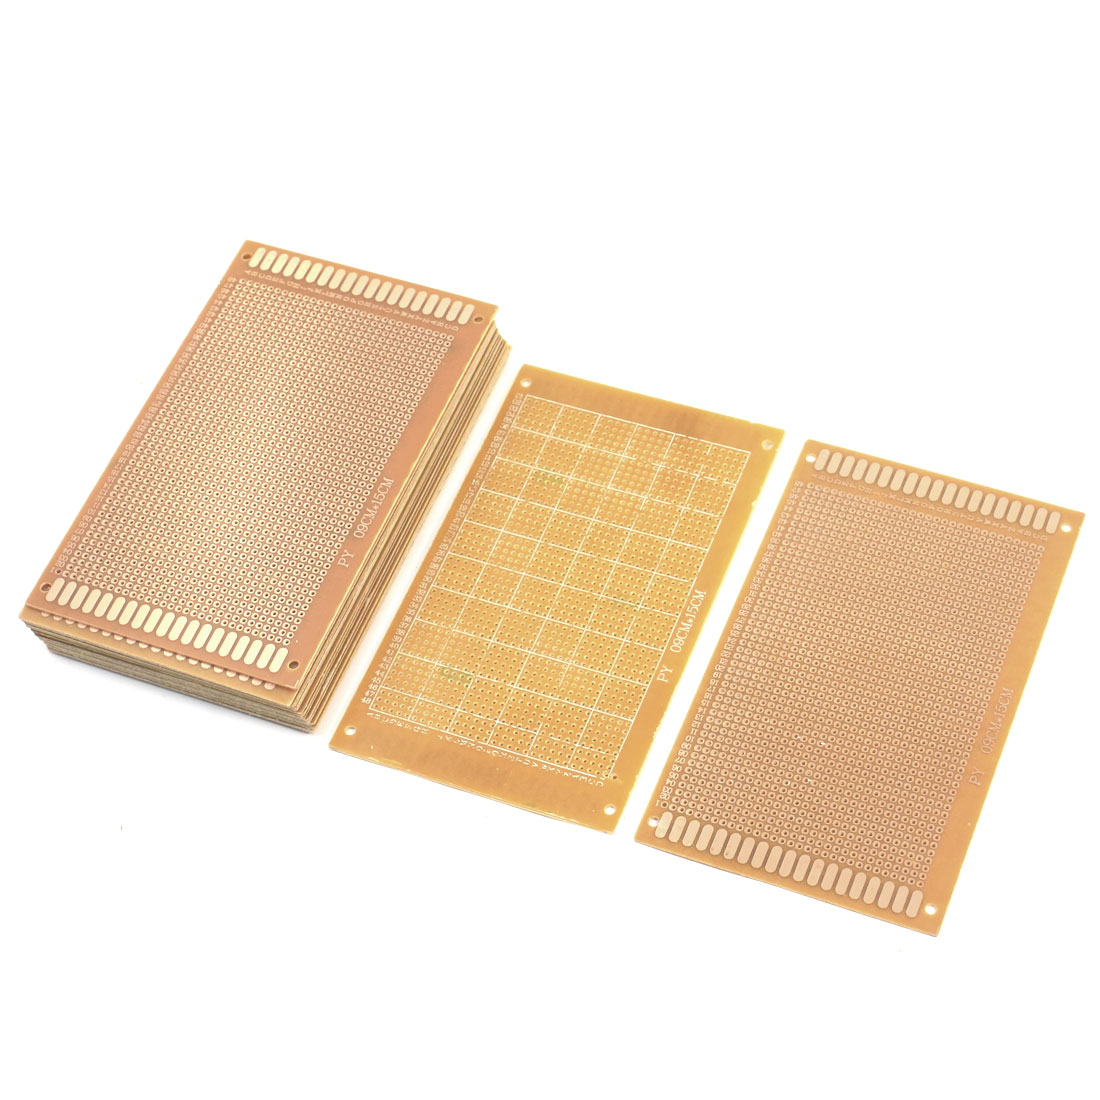 20Pcs Bakelite Single Side Copper Prototype PCB Matrix Board 15cmx9cm